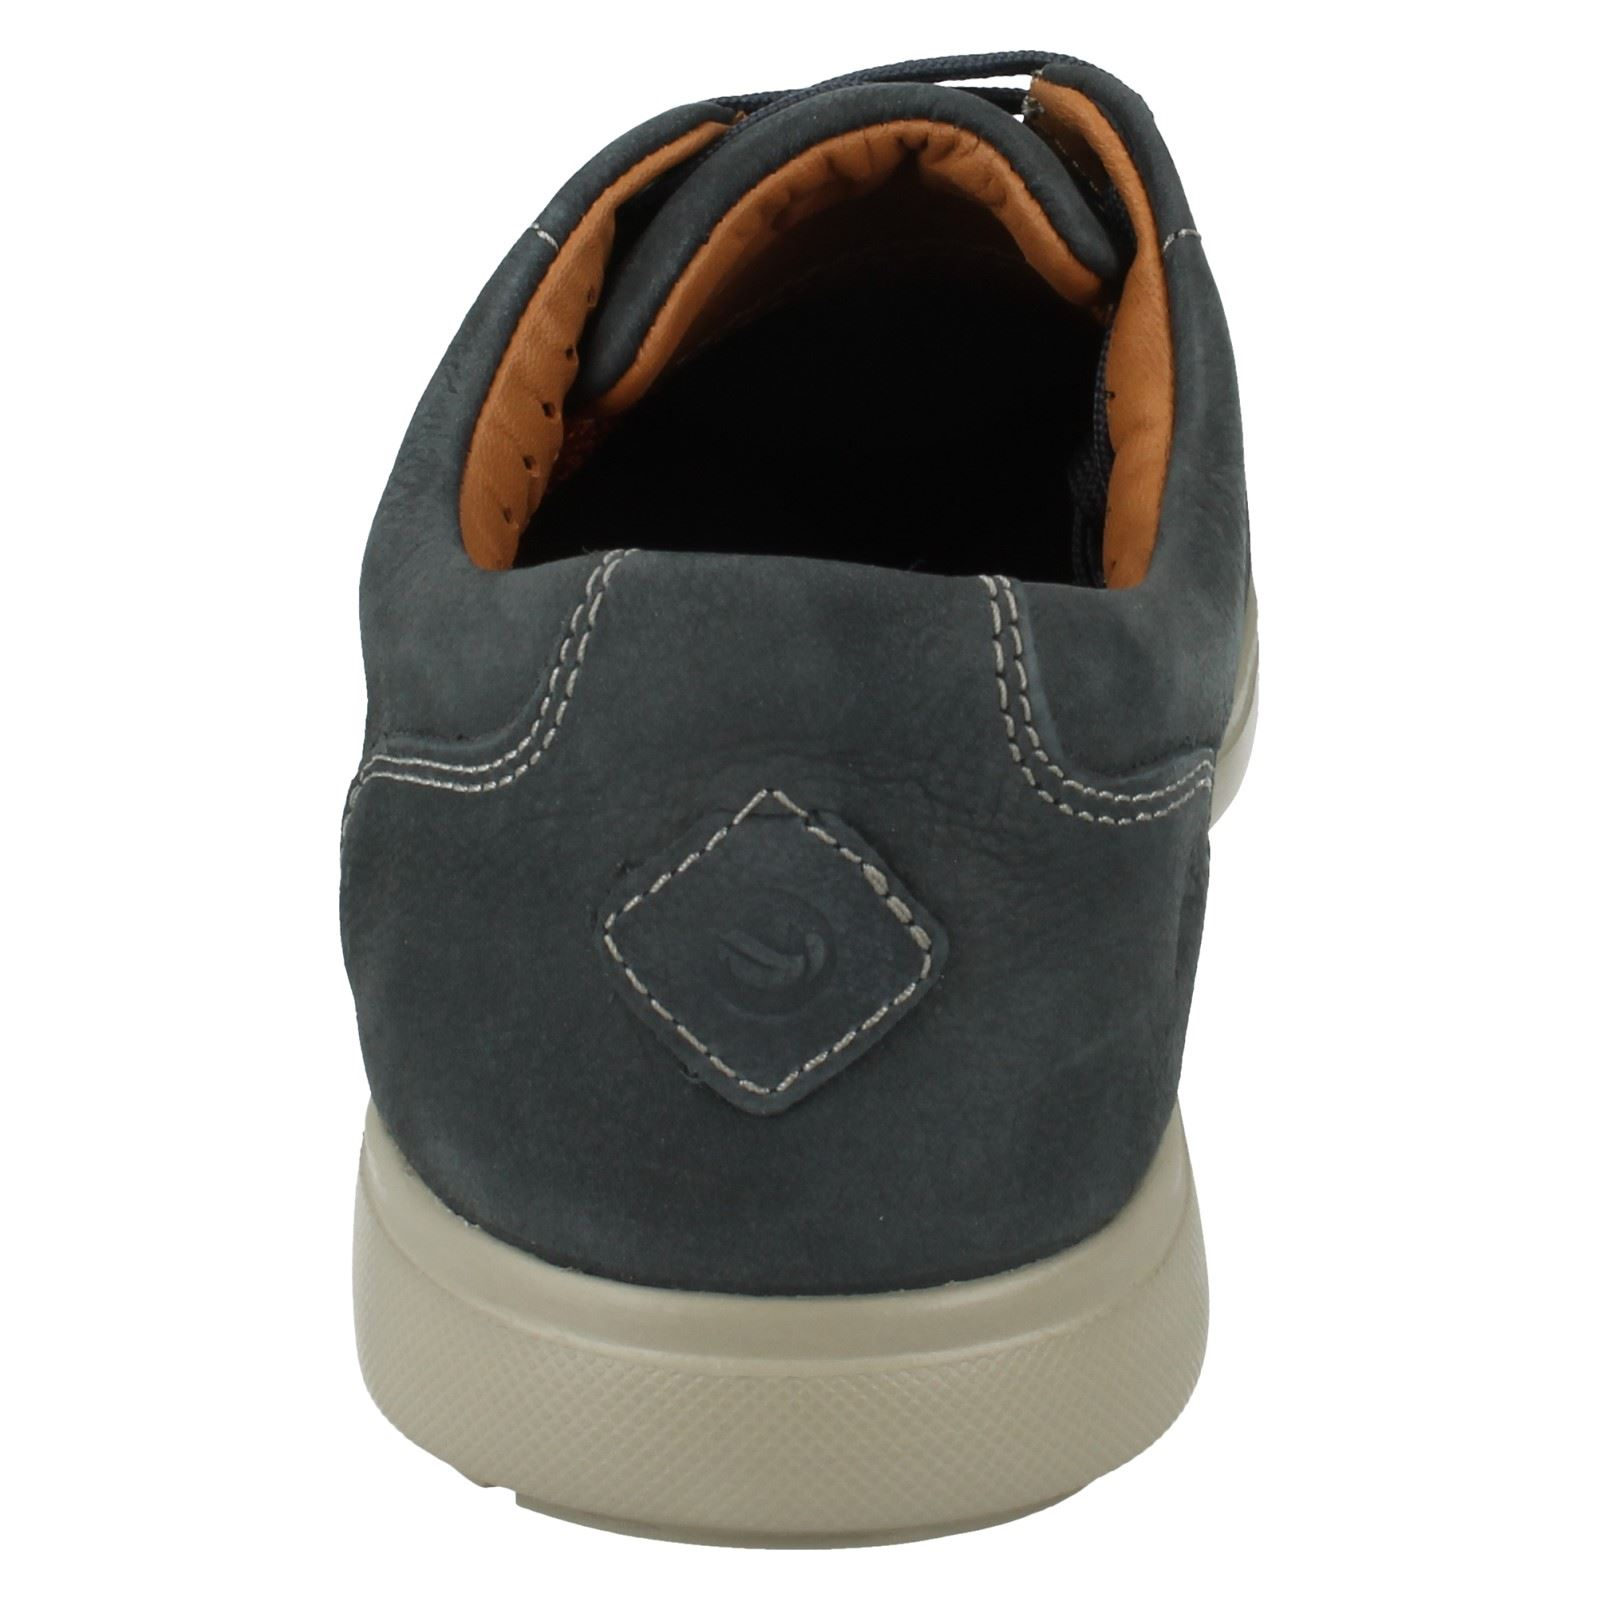 Mens Clarks Casual LaceUp Shoes Style -  Unlomac edge